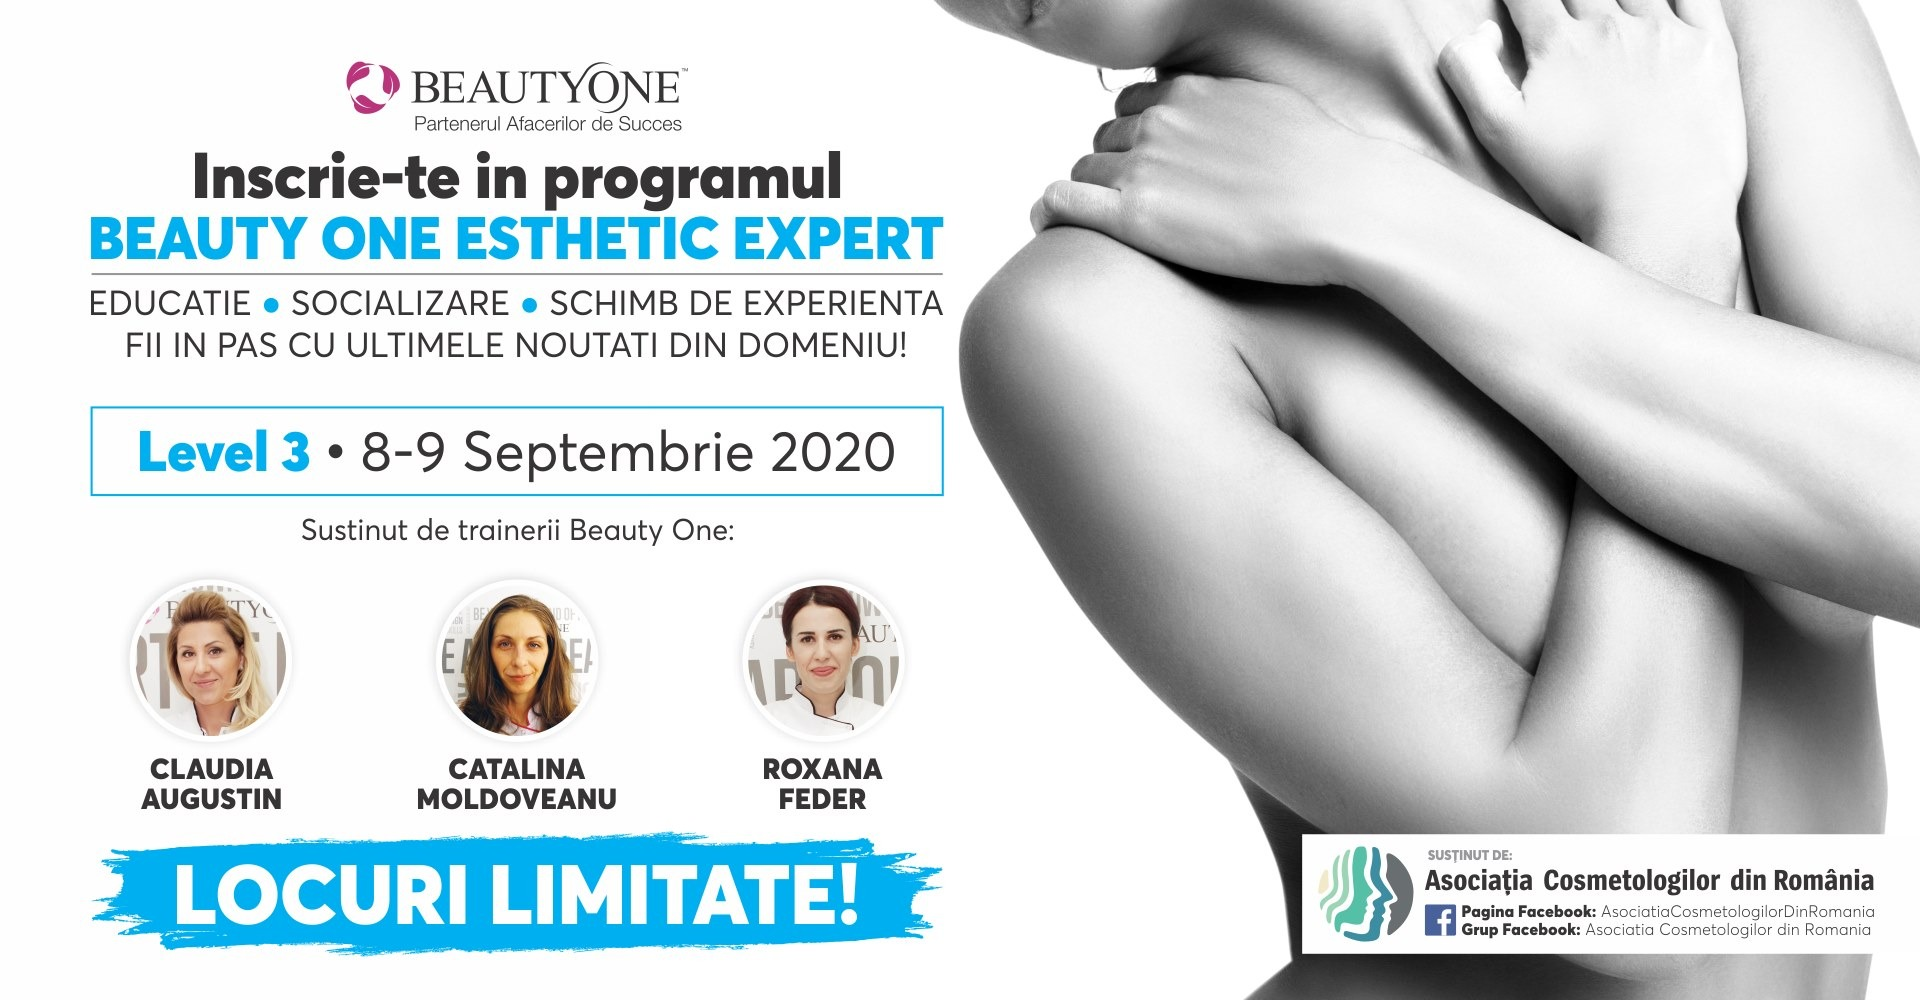 Beauty Expert - Level 3 stabilit pe 8-9 septembrie 2020